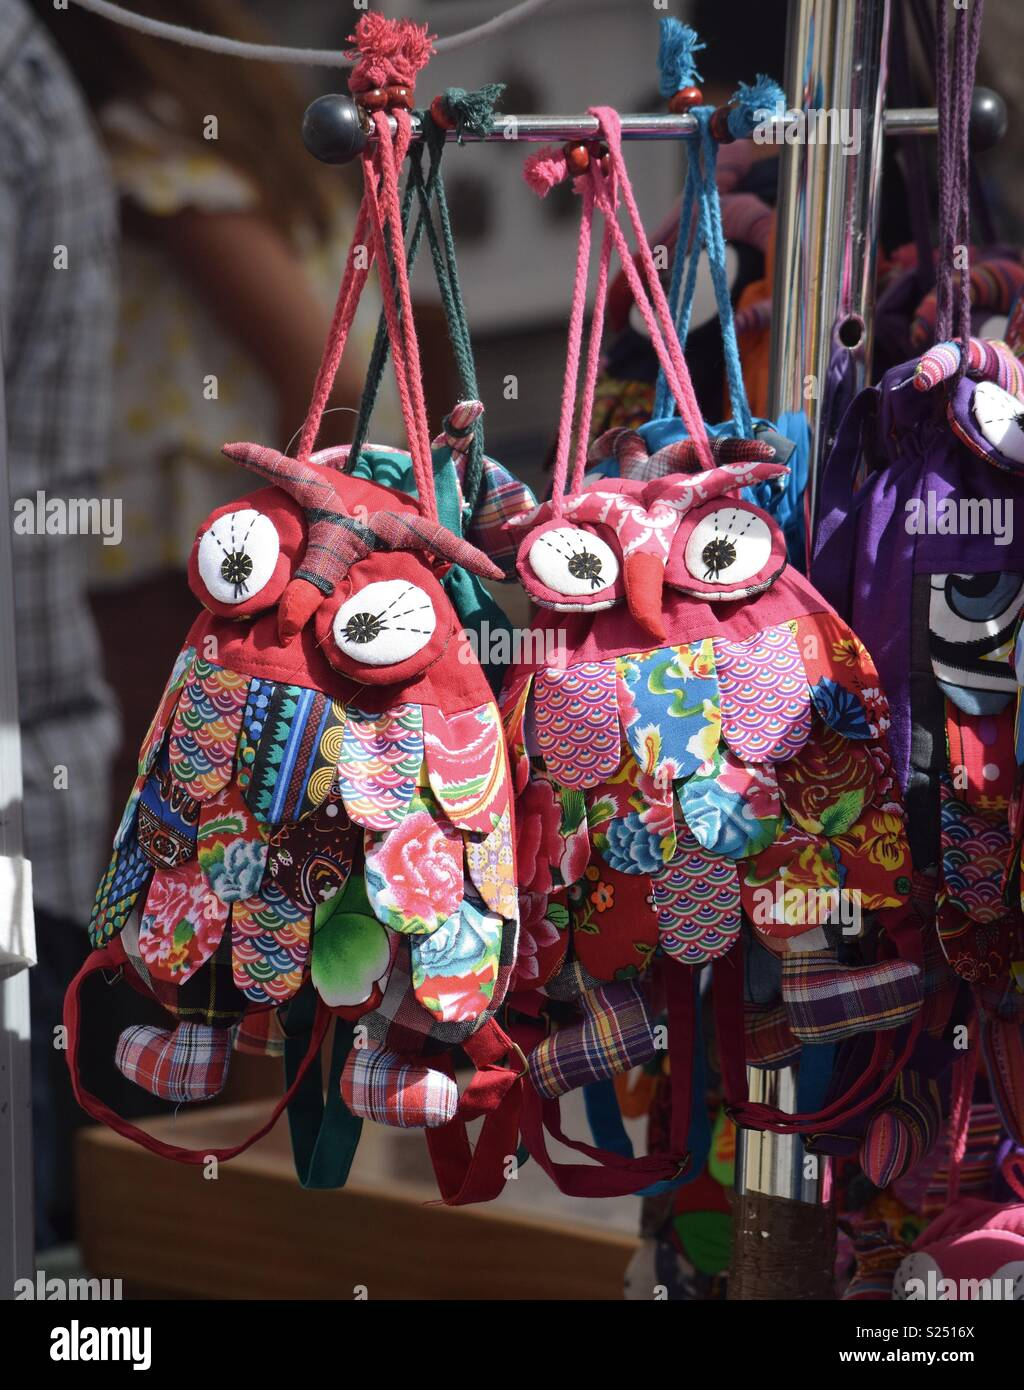 Purses in the shape of owls made from colorful fabric scraps for sale! - Stock Image